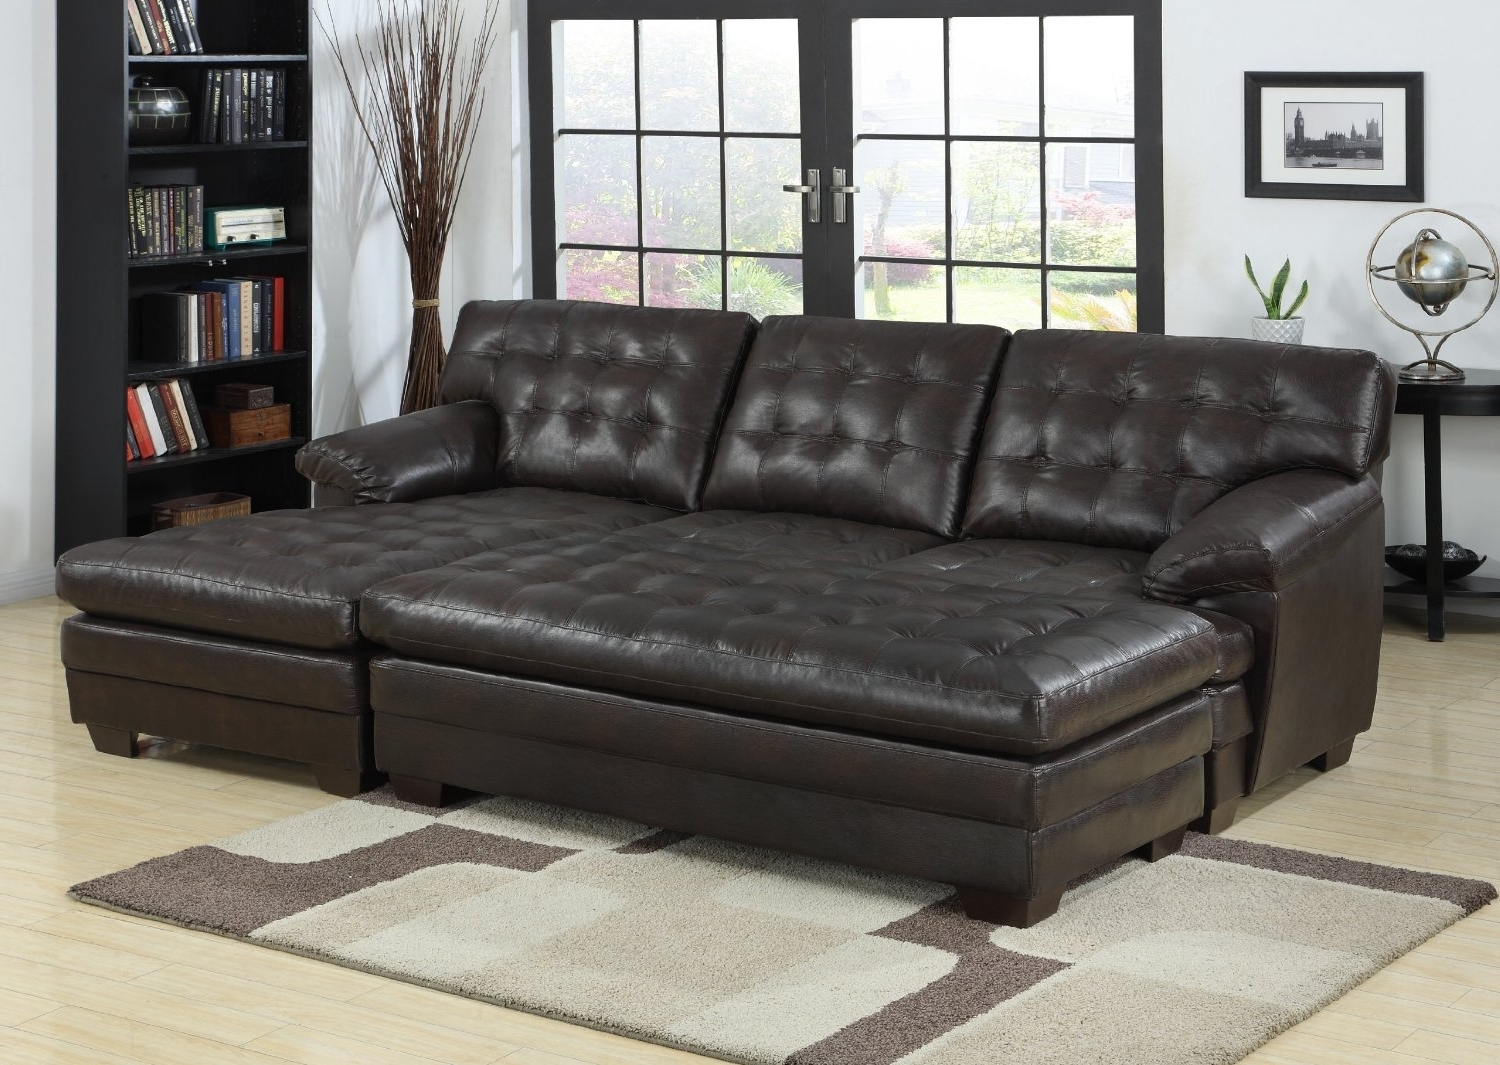 Popular Double Chaise Lounge Sofa Image Gallery — The Home Redesign : The Throughout Leather Chaise Lounge Sofas (View 11 of 15)